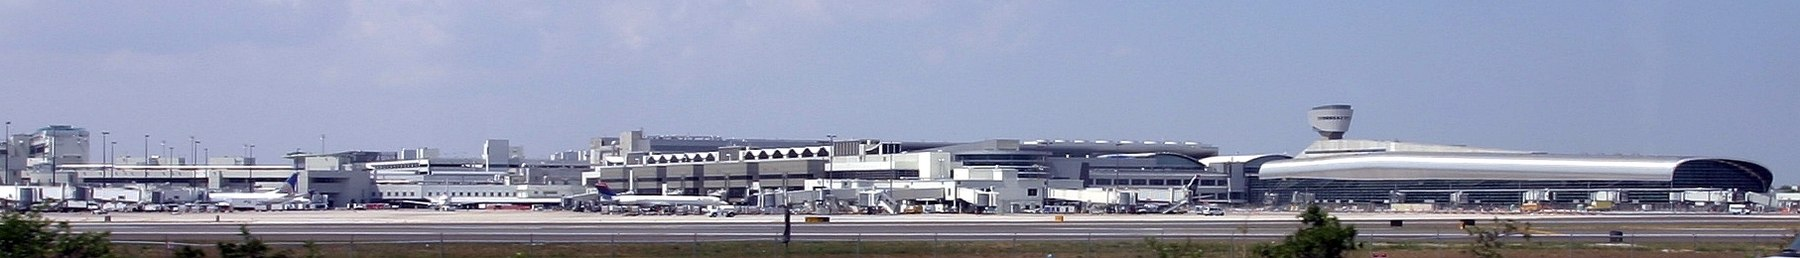 Miami Airport Wikivoyage banner.jpg